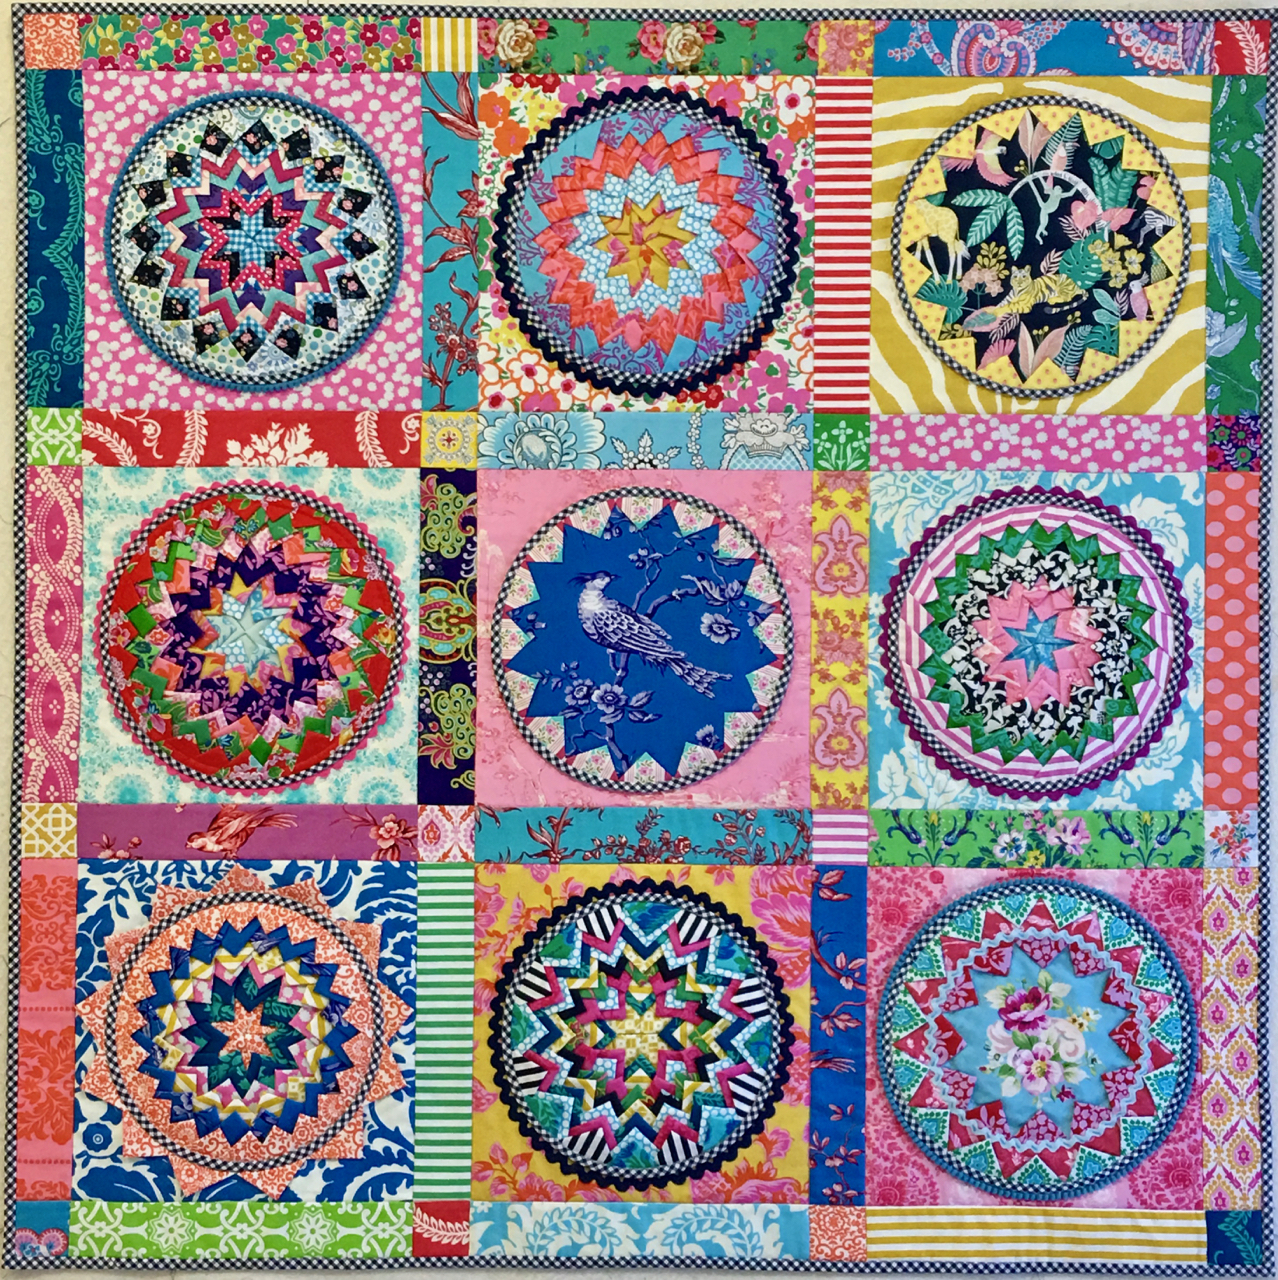 My Quilts! - Blue Mountain Daisy : quilt and craft show brisbane - Adamdwight.com